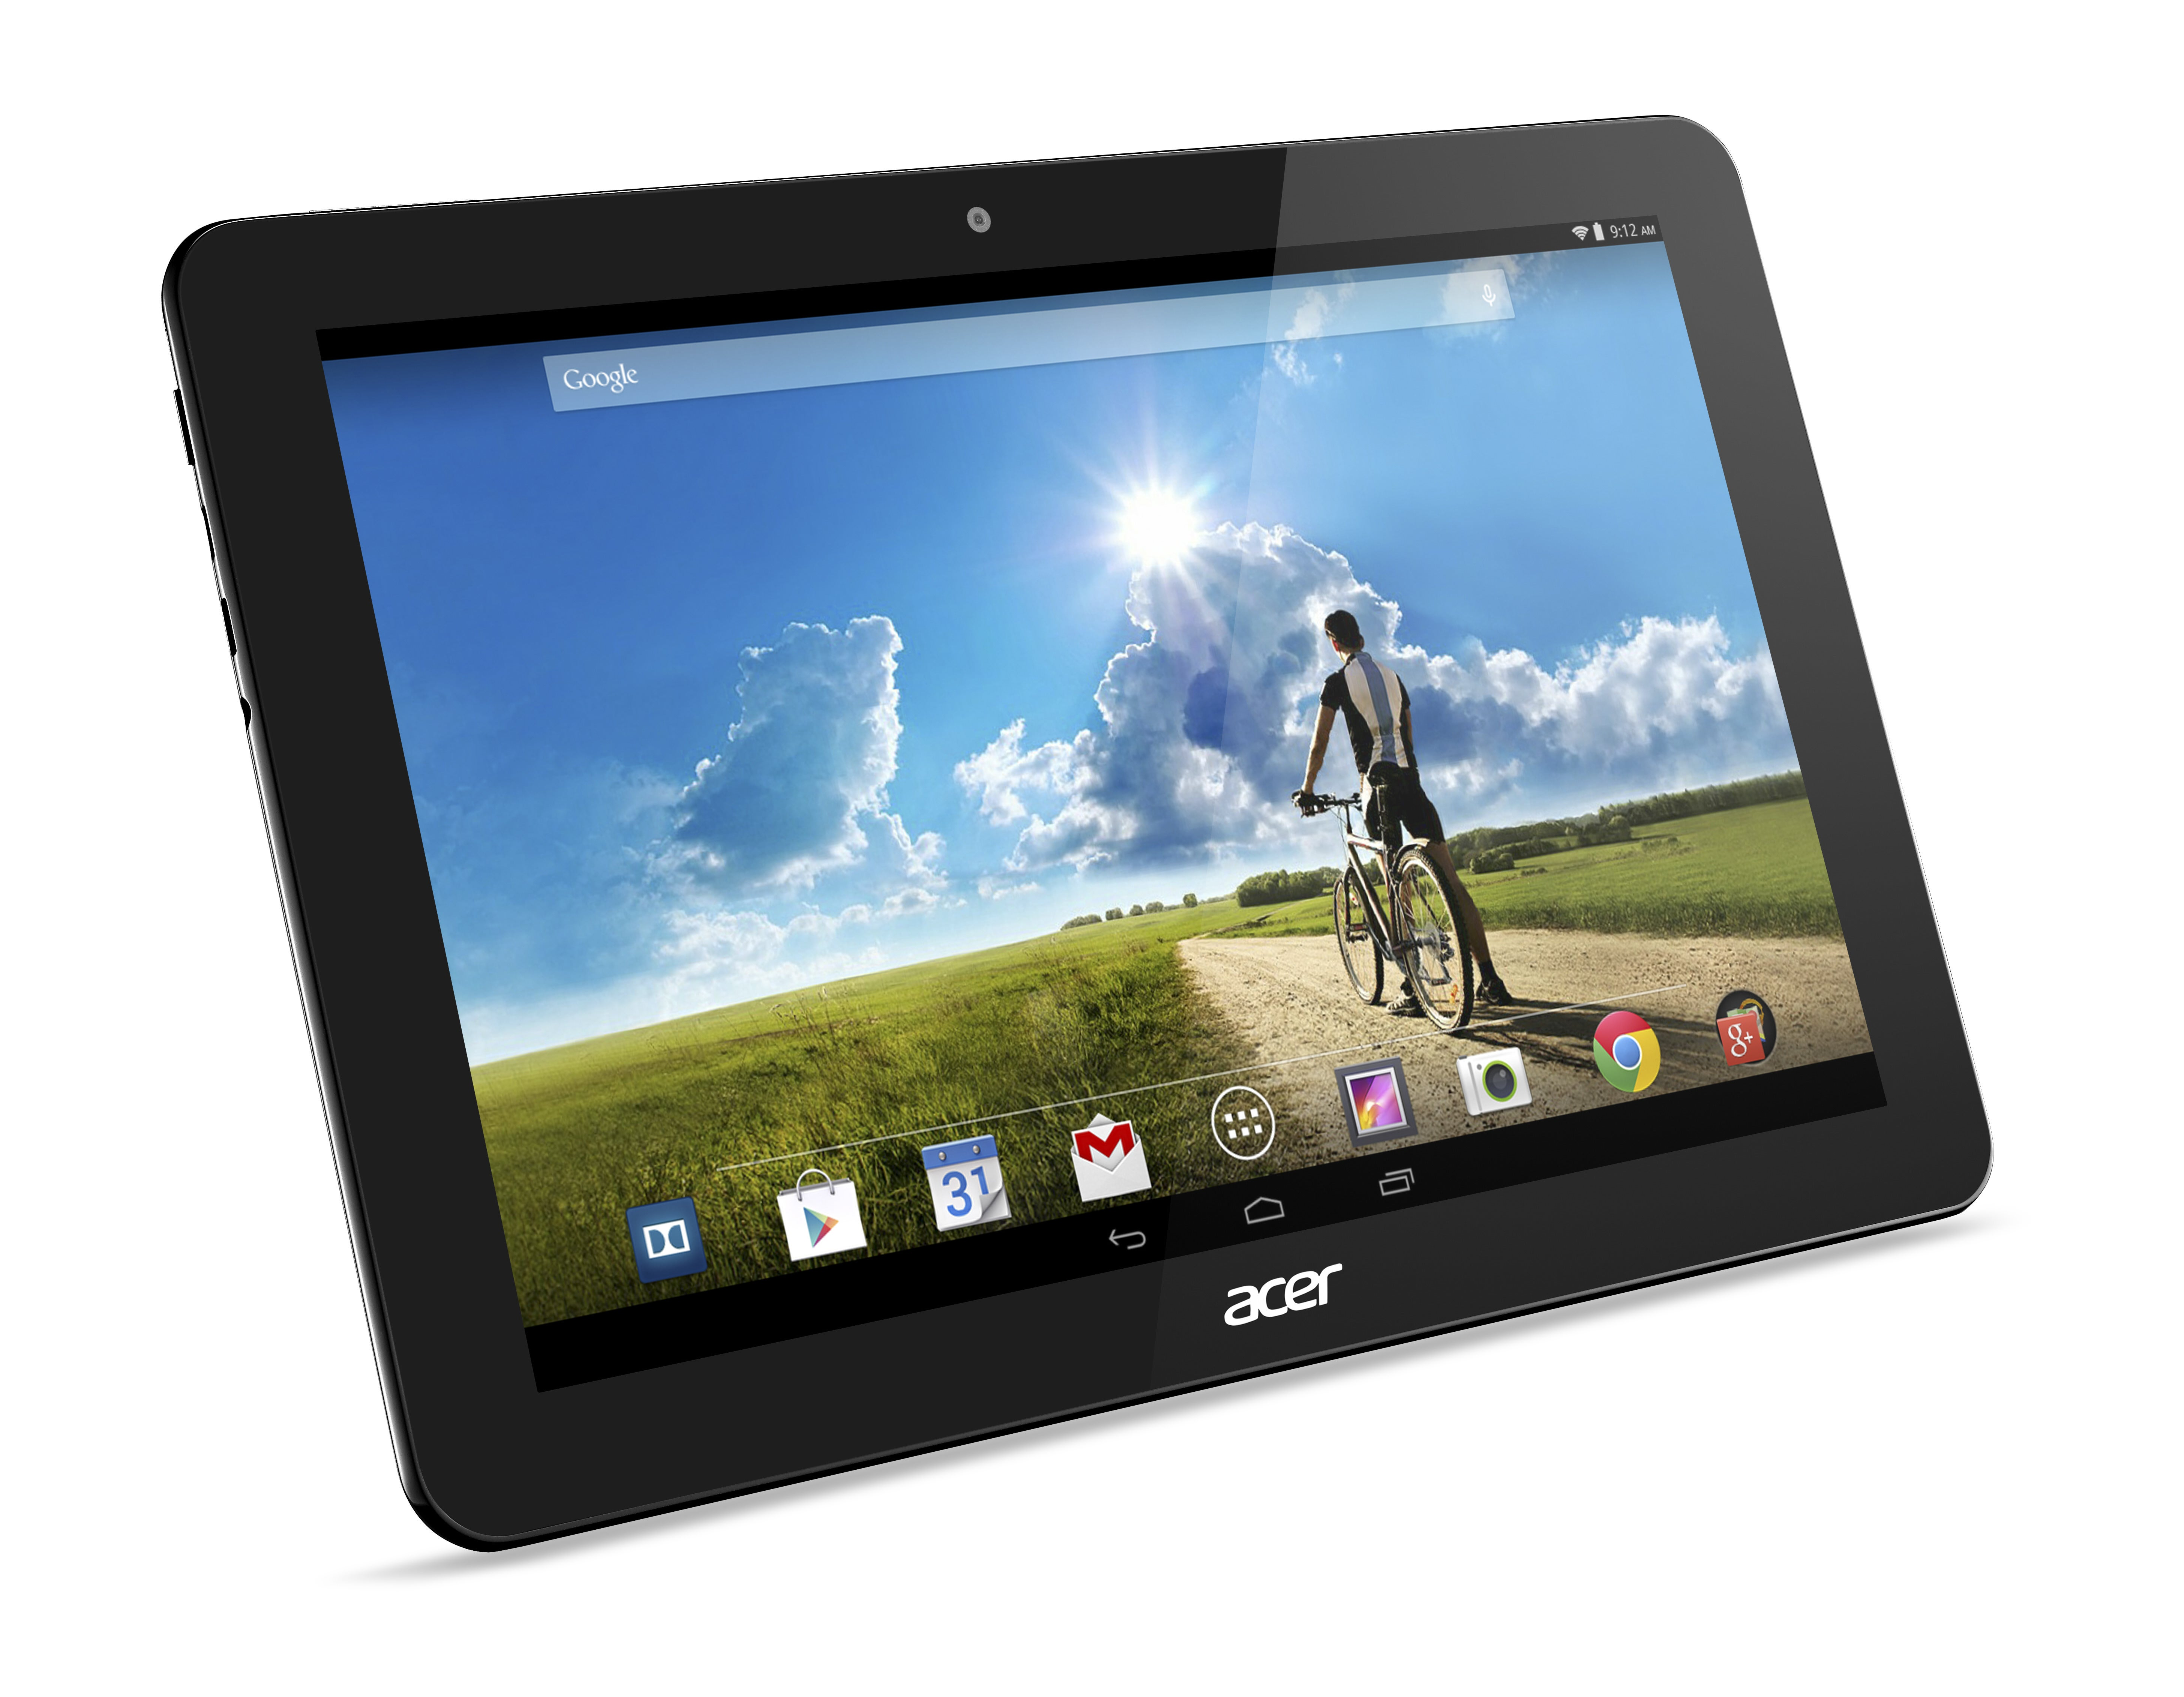 acer launches 150 windows tablet upgrades android offerings pcworld. Black Bedroom Furniture Sets. Home Design Ideas